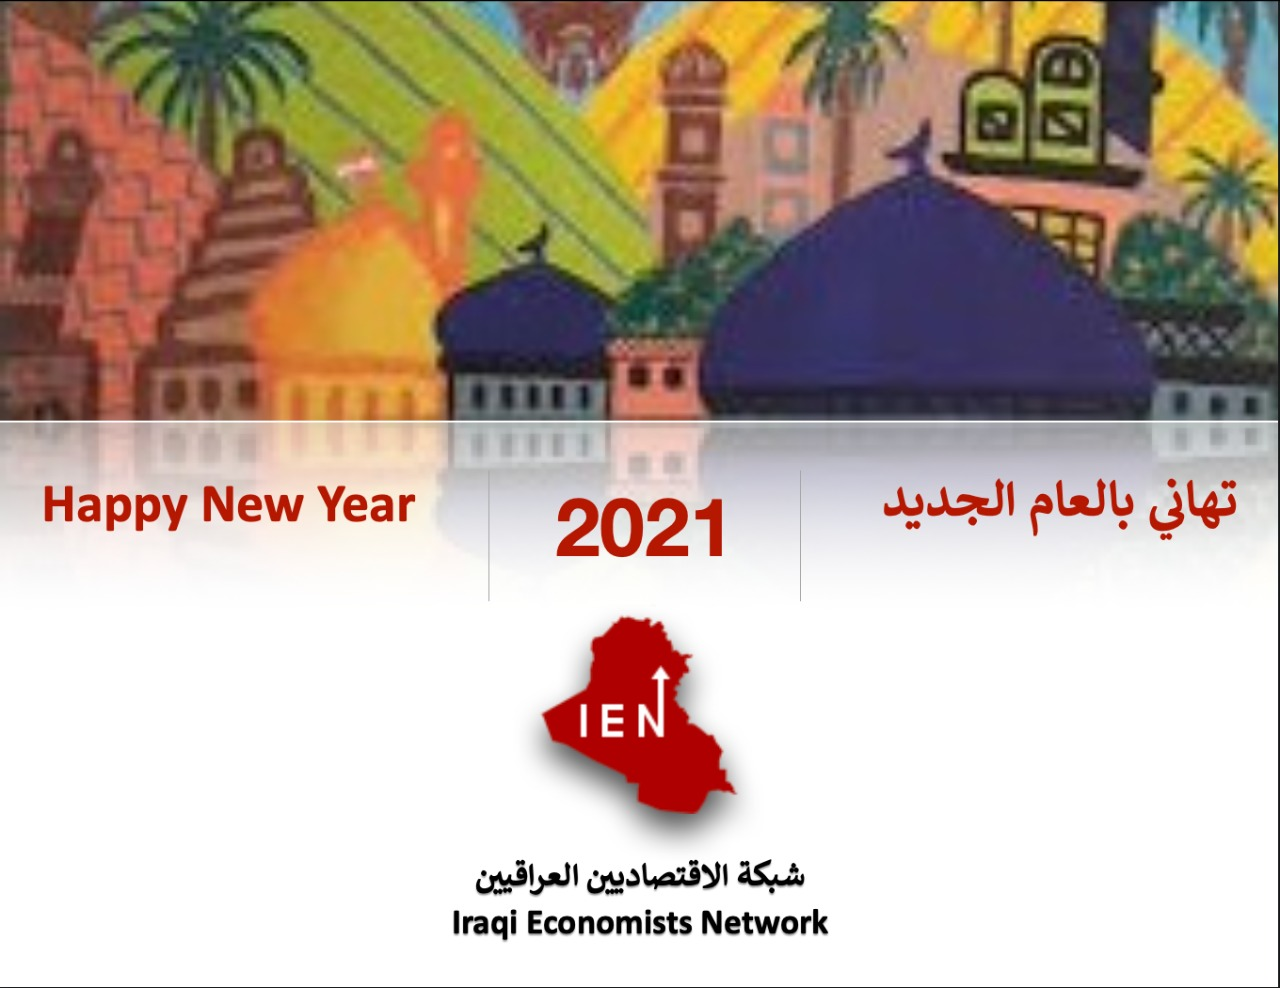 We wish our readers and all Iraqi a happy and prosperous New Year 2021